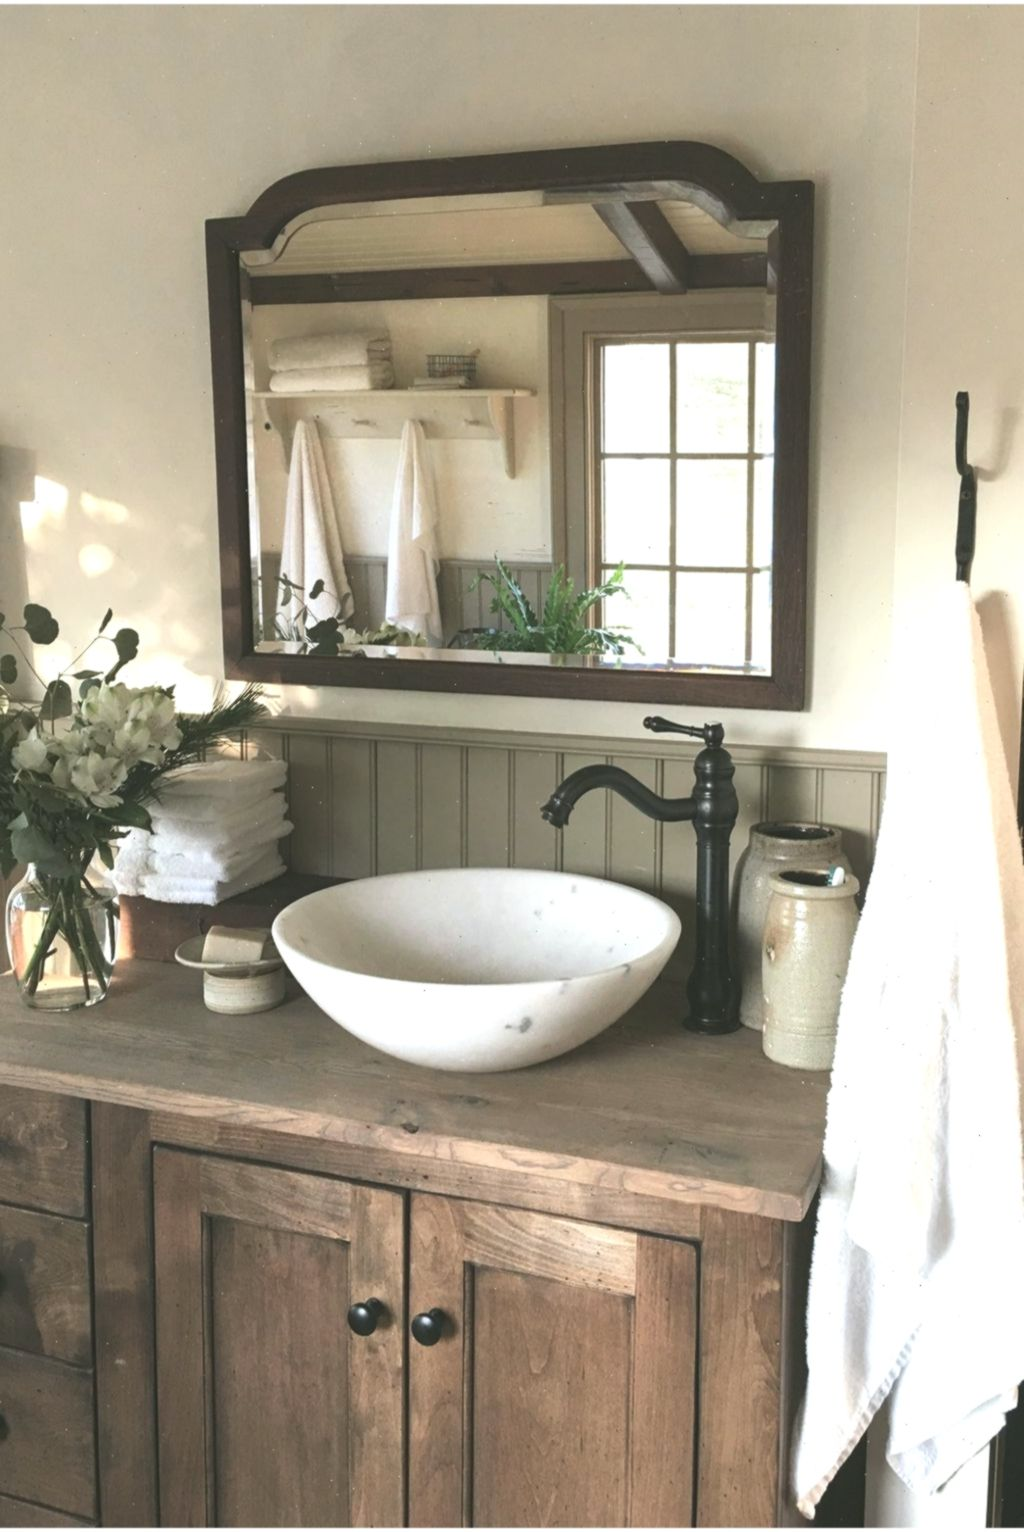 Rustikale Bäder 50 Perfekte Rustikale Bauernhaus Badezimmer Design-ideen #hausdesign #rustichousedesign | Farmhouse Bathroom Decor, Farmhouse Bathroom, Bathroom Design